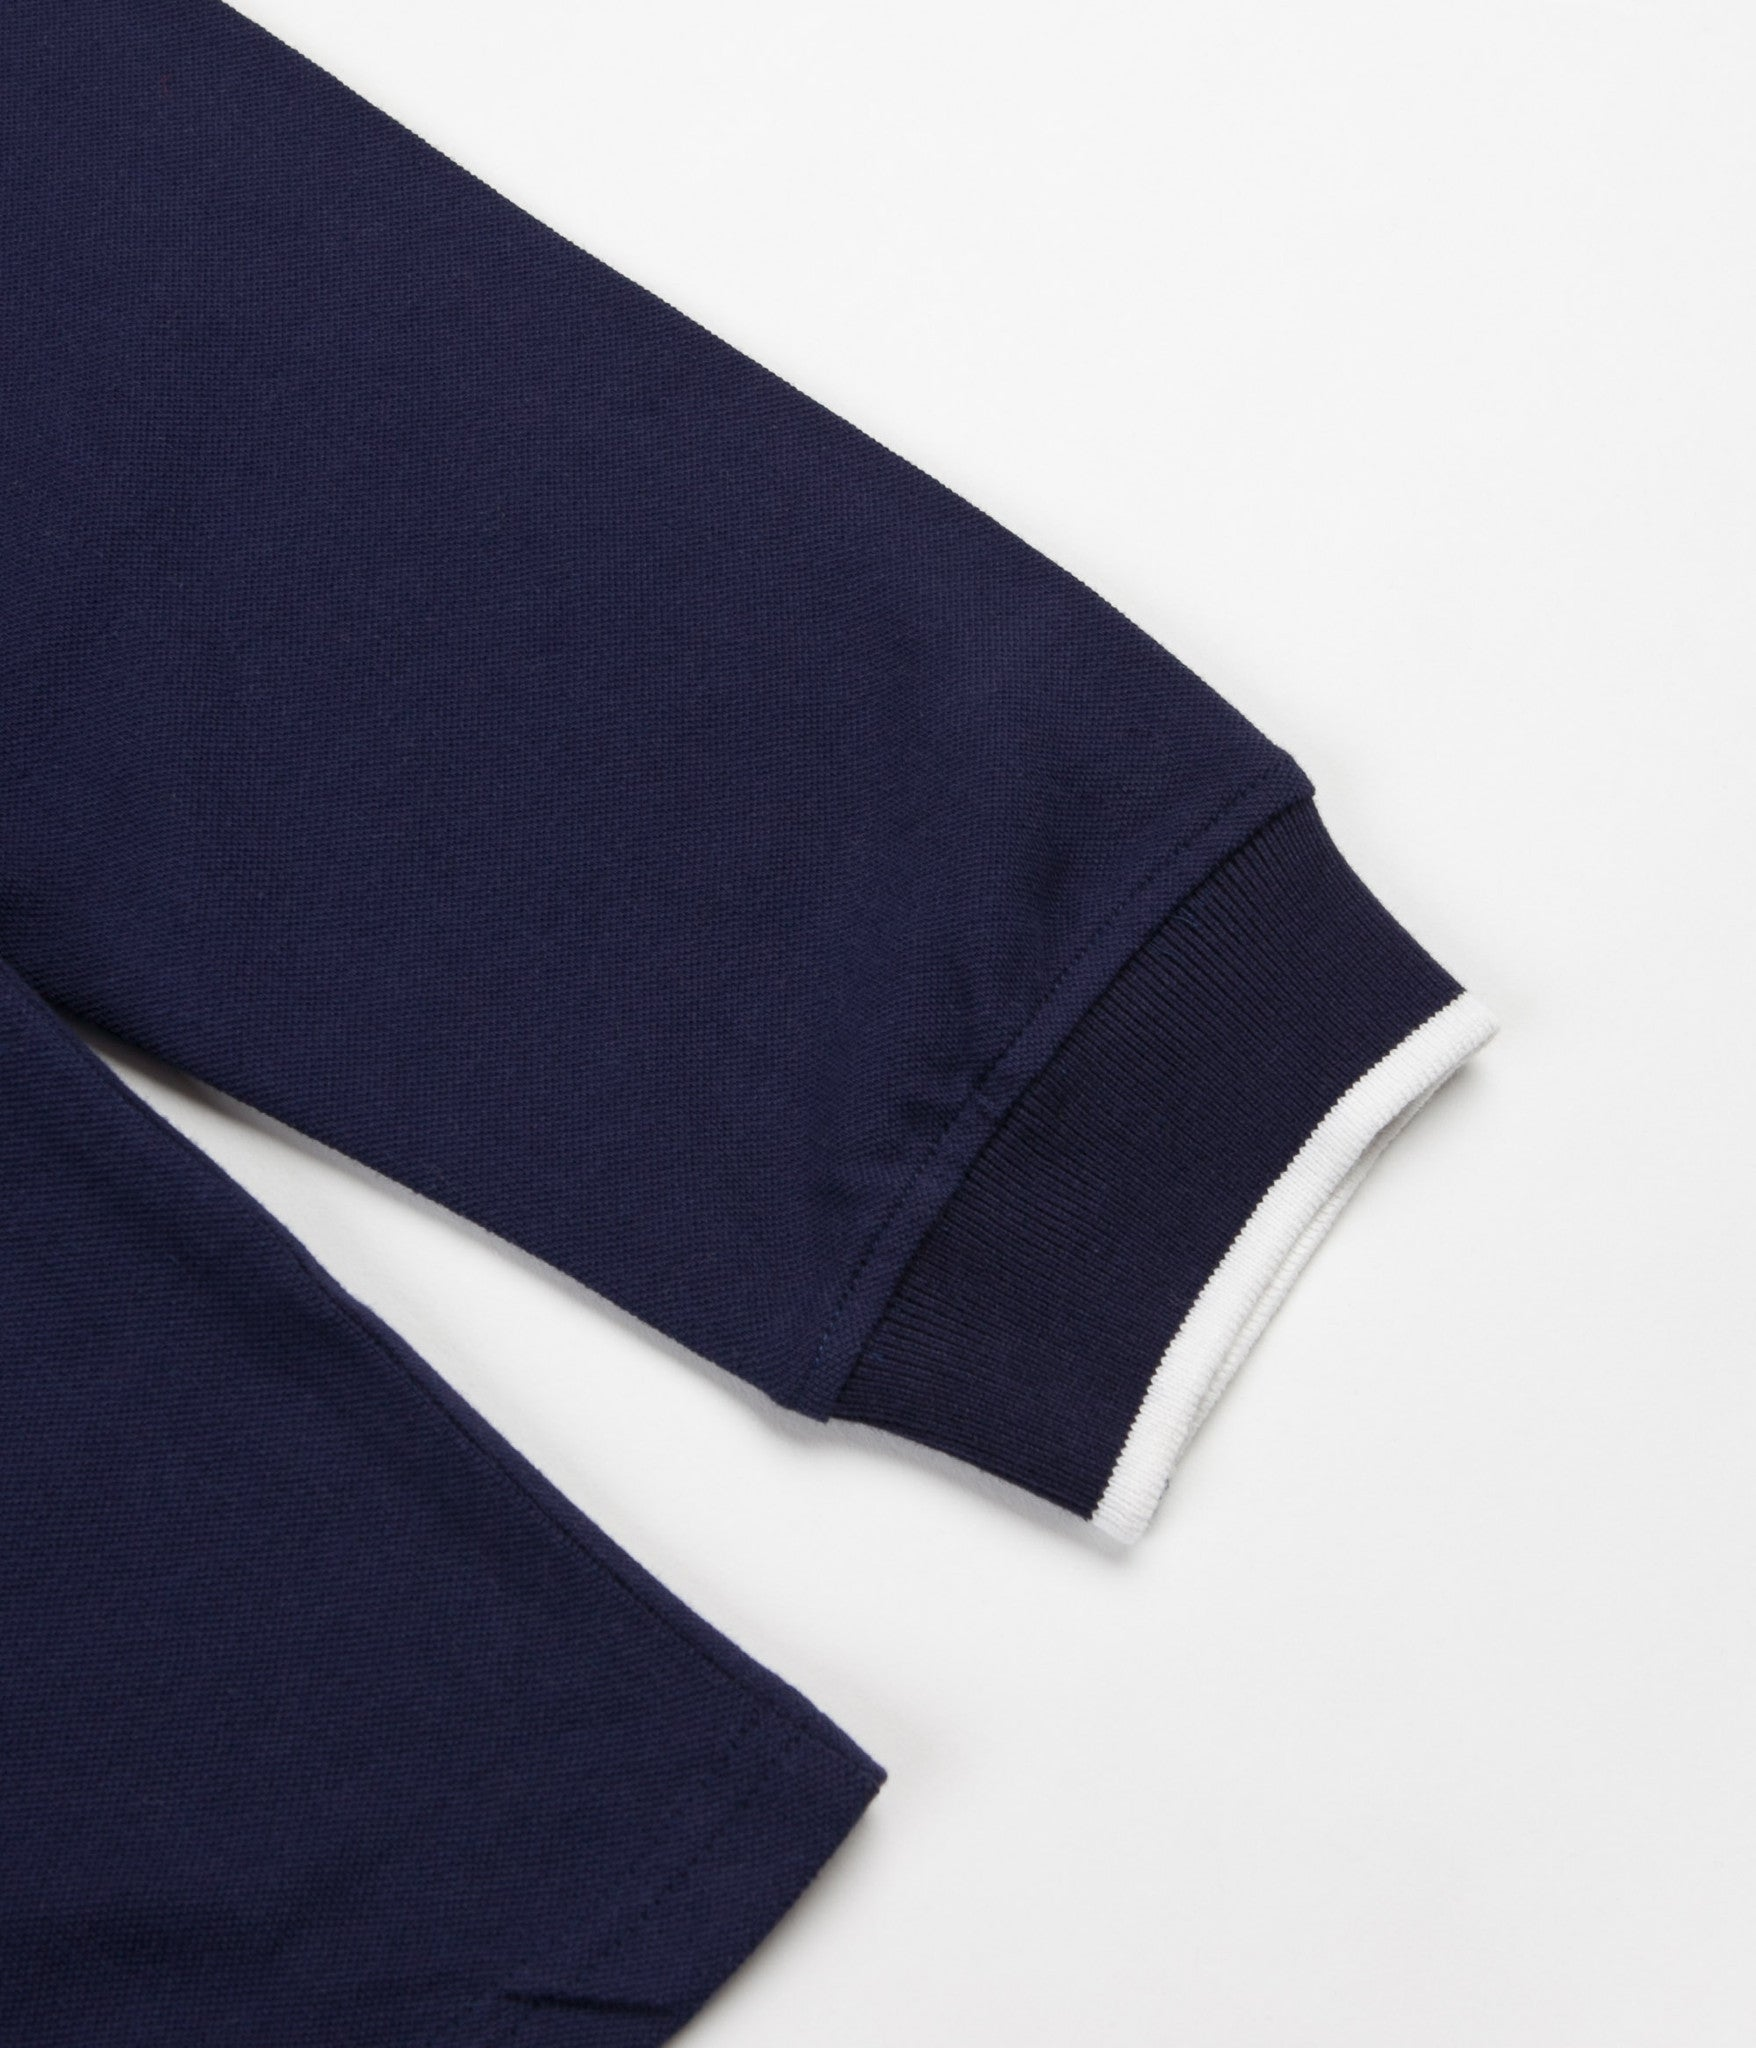 Stussy Wayfarer Long Sleeve T-Shirt - Navy